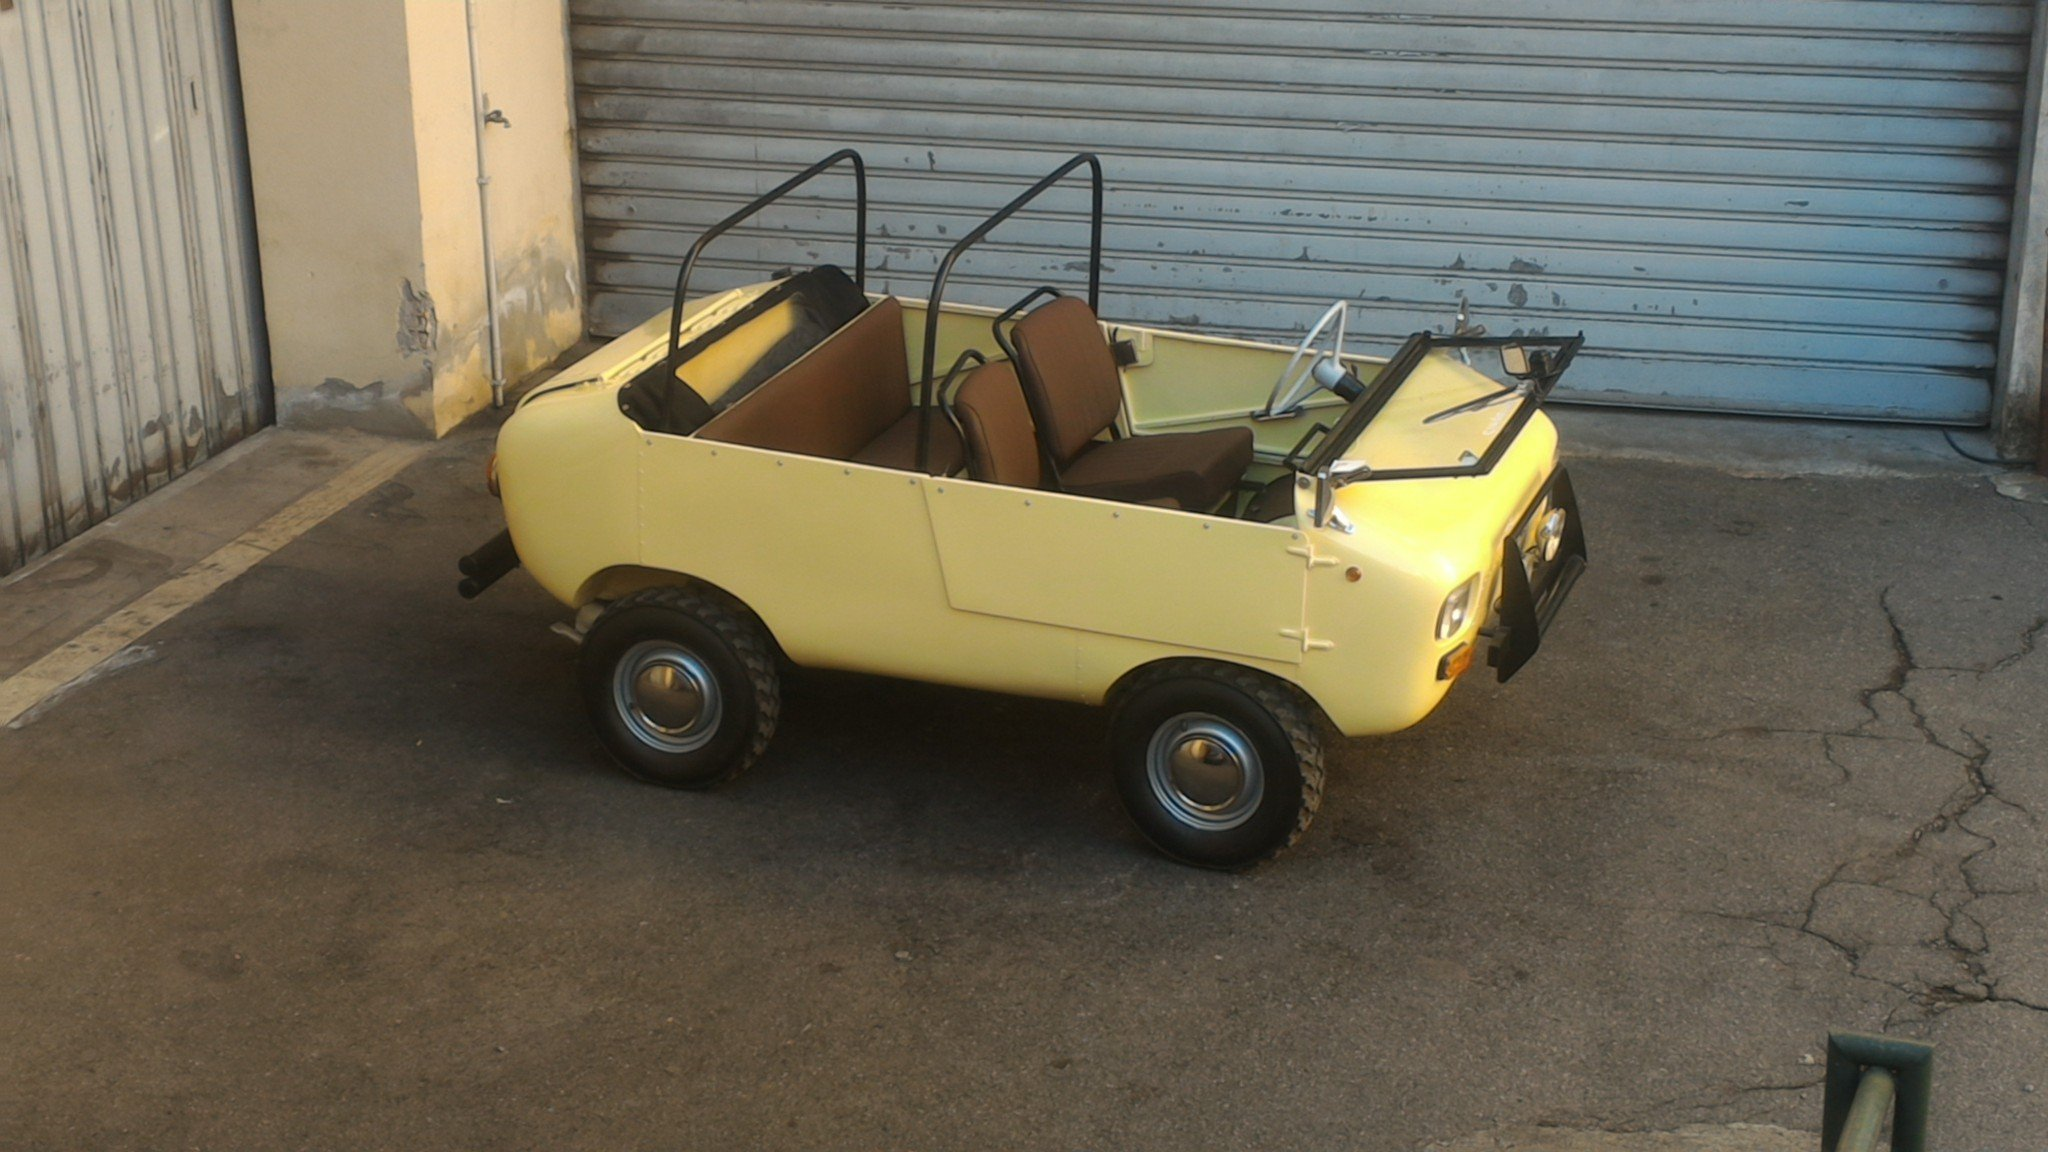 1969 Rare FERVES RANGER 4x4 Fiat 500 600 Derivative For Sale (picture 2 of 6)